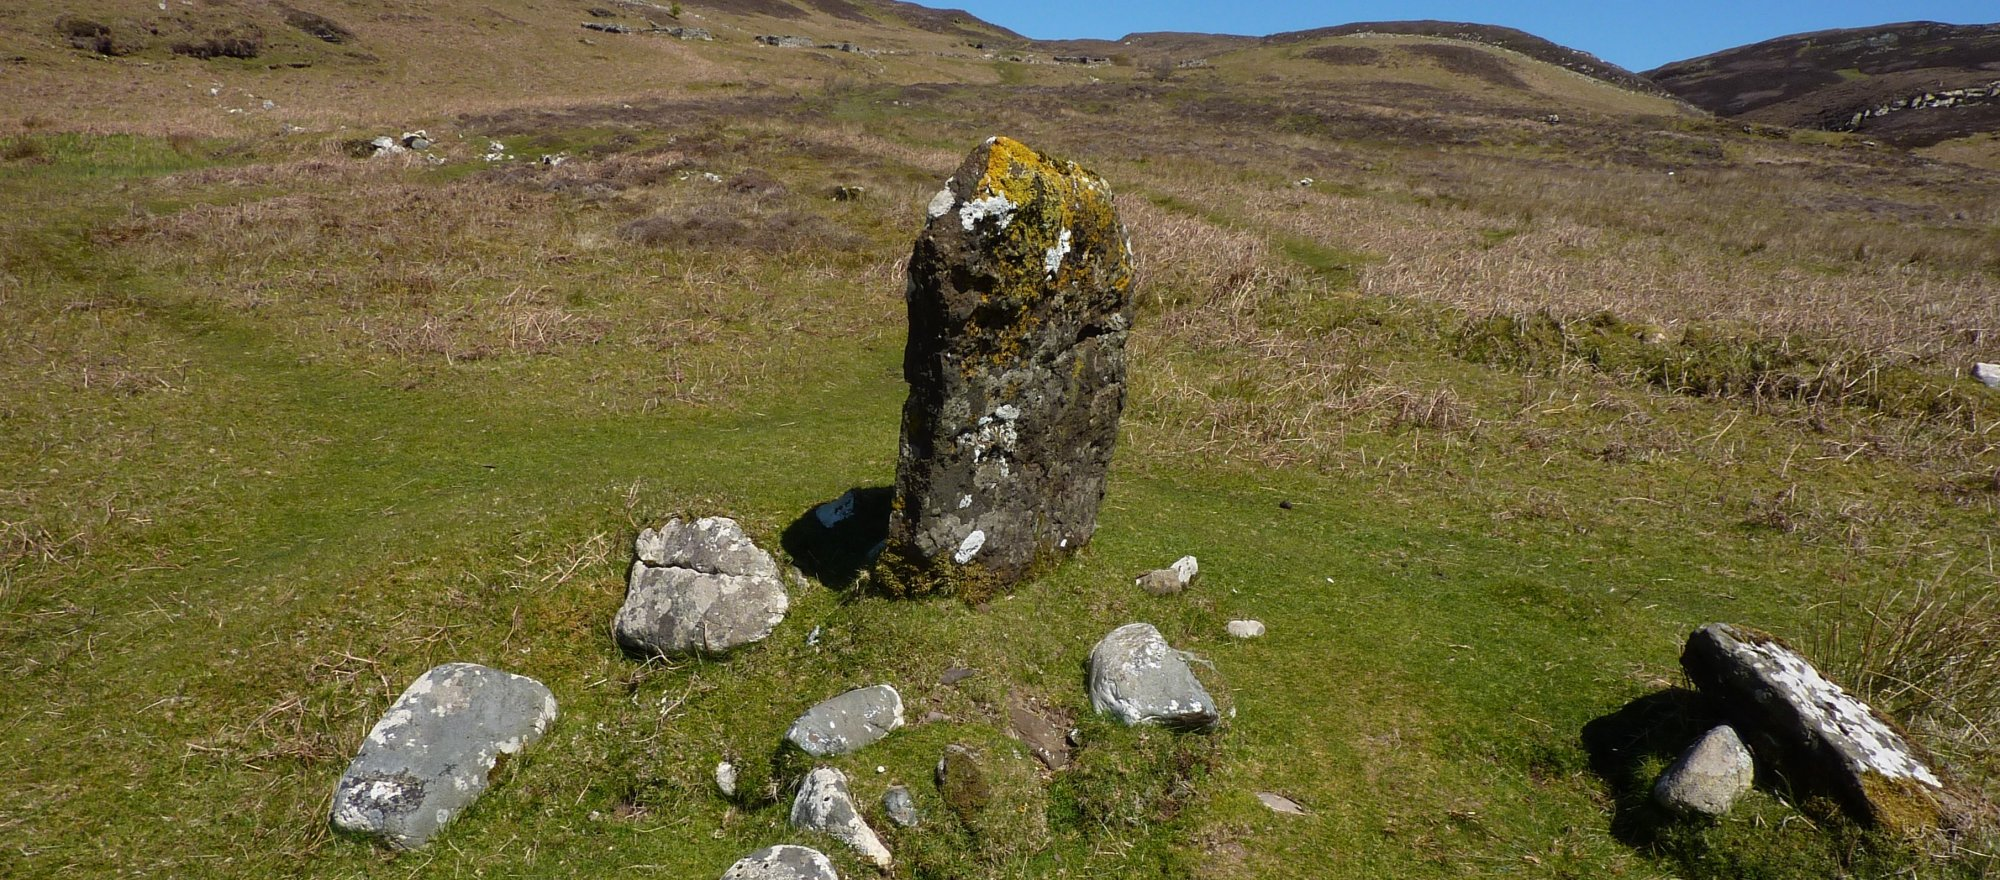 The standing stone in the centre of the community, my path leads away up to the skyline ahead